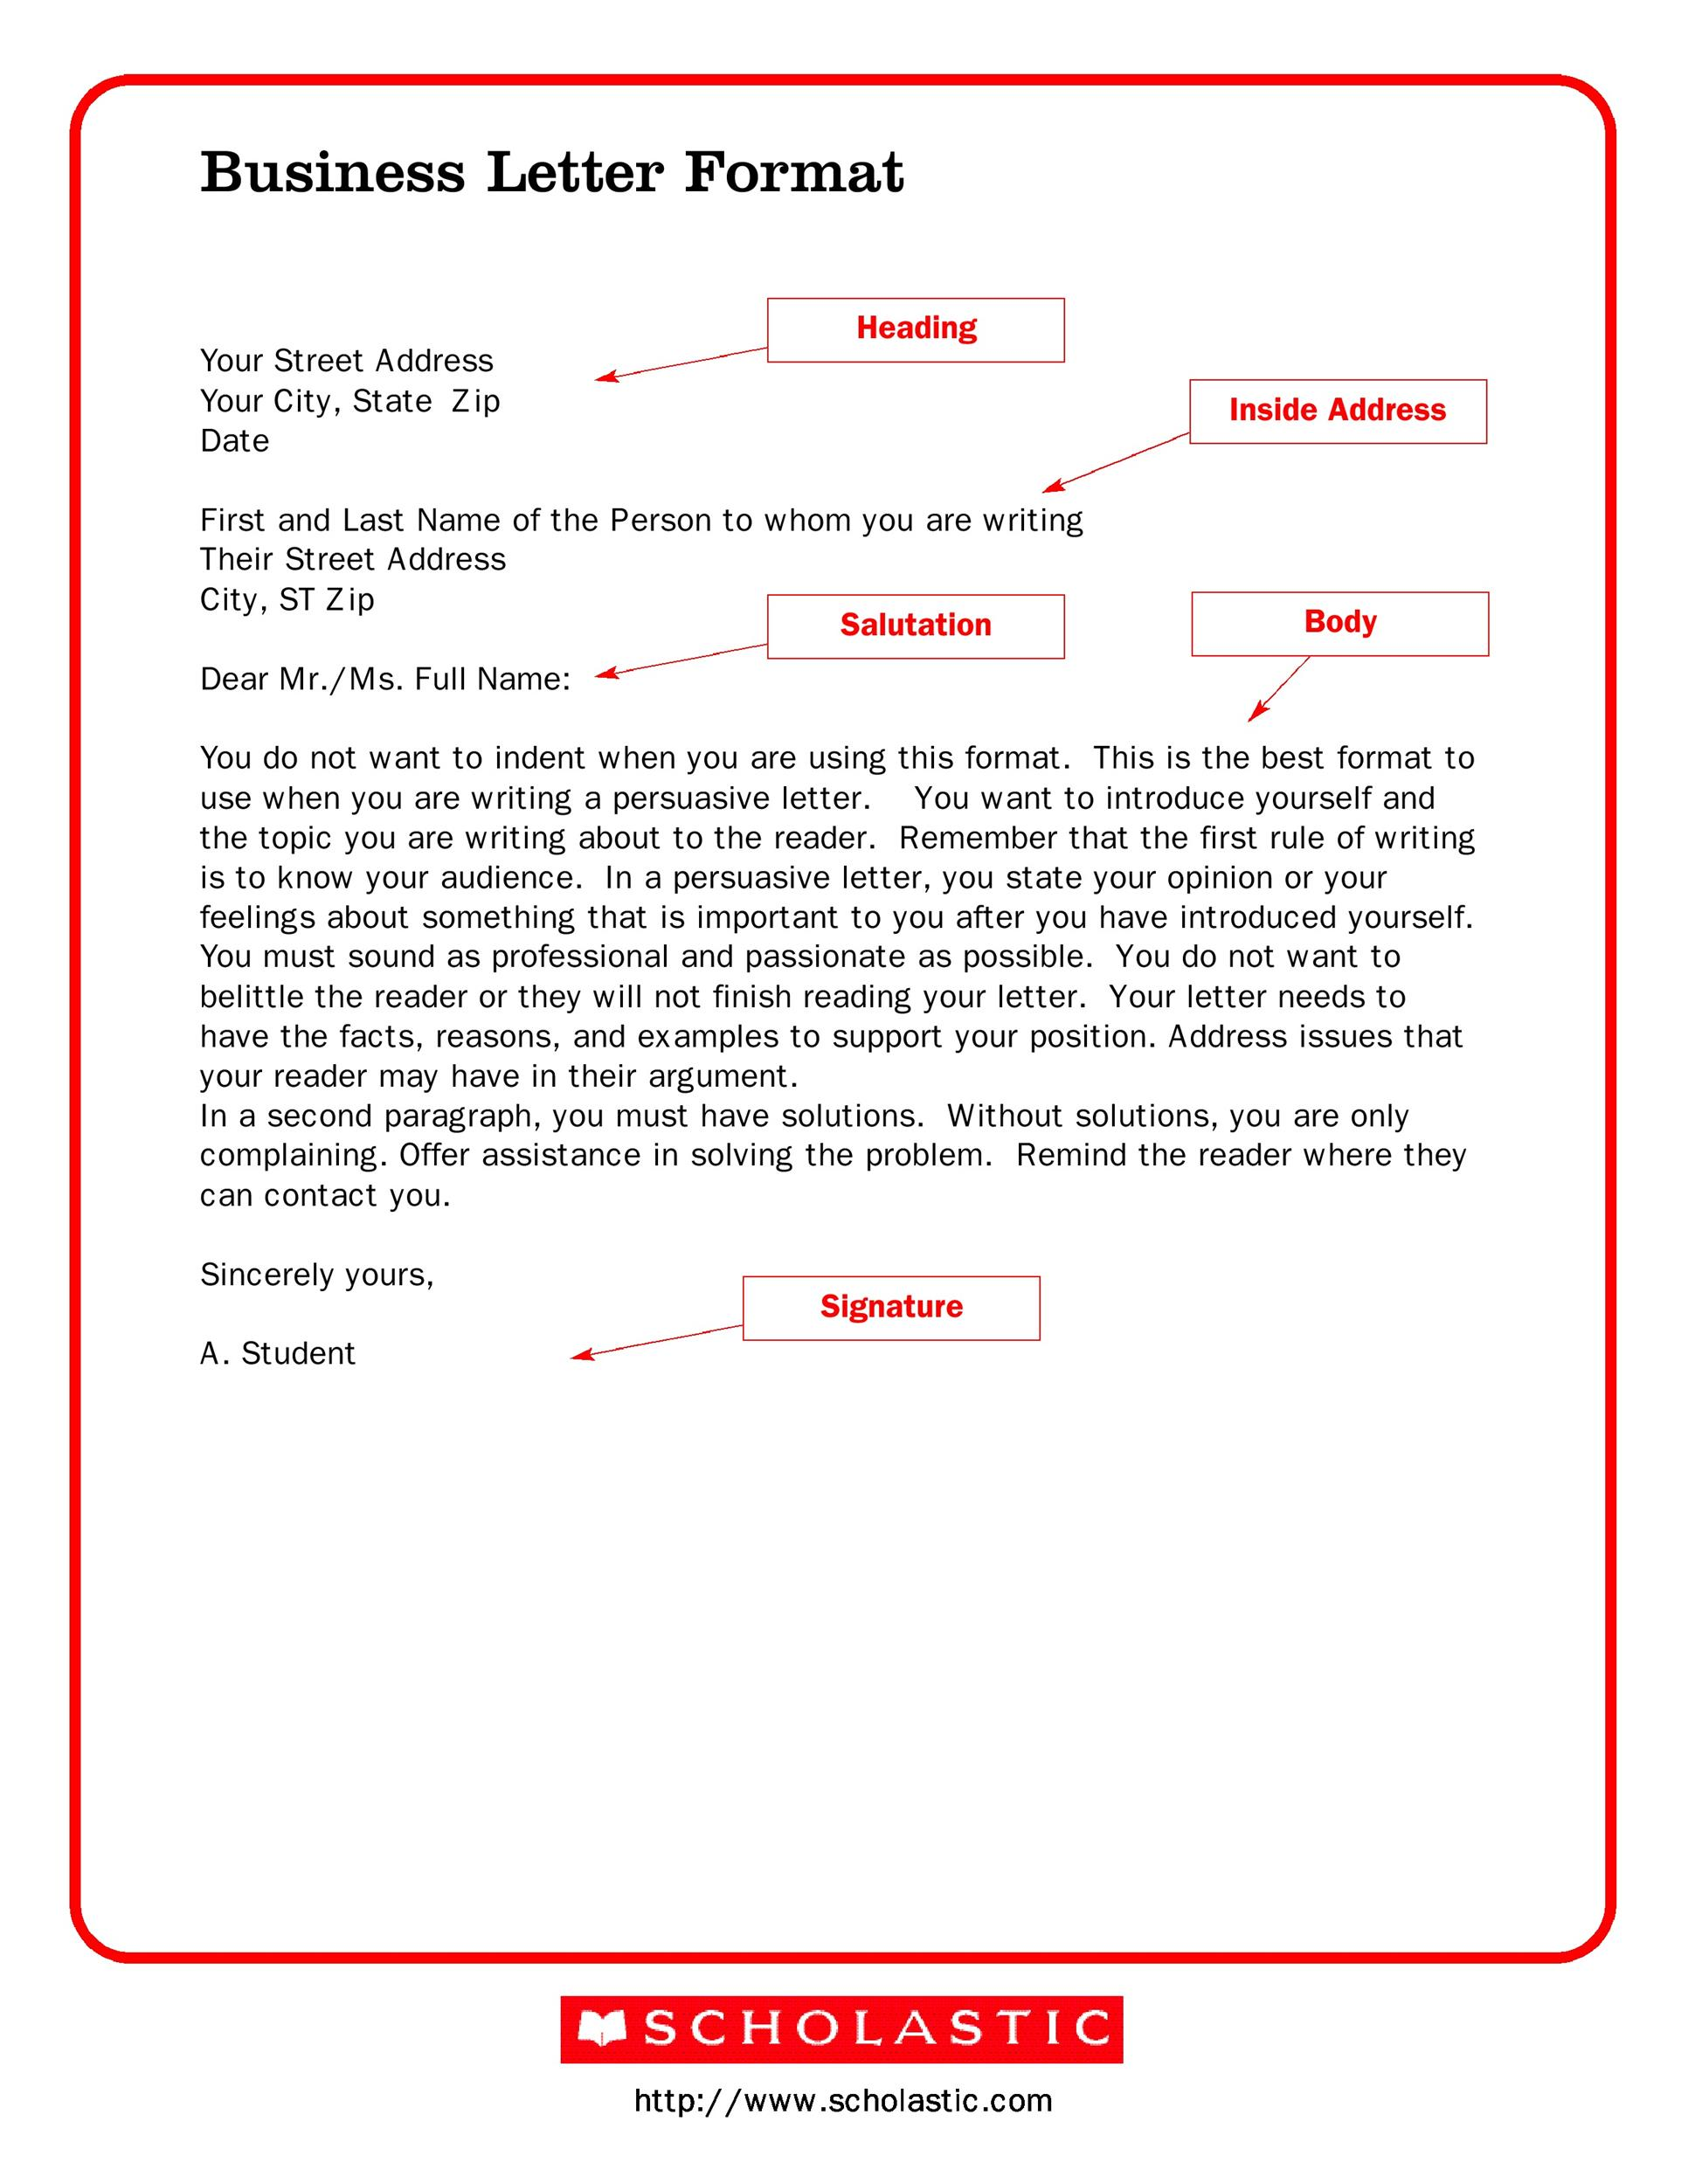 how to write a correct business letter format